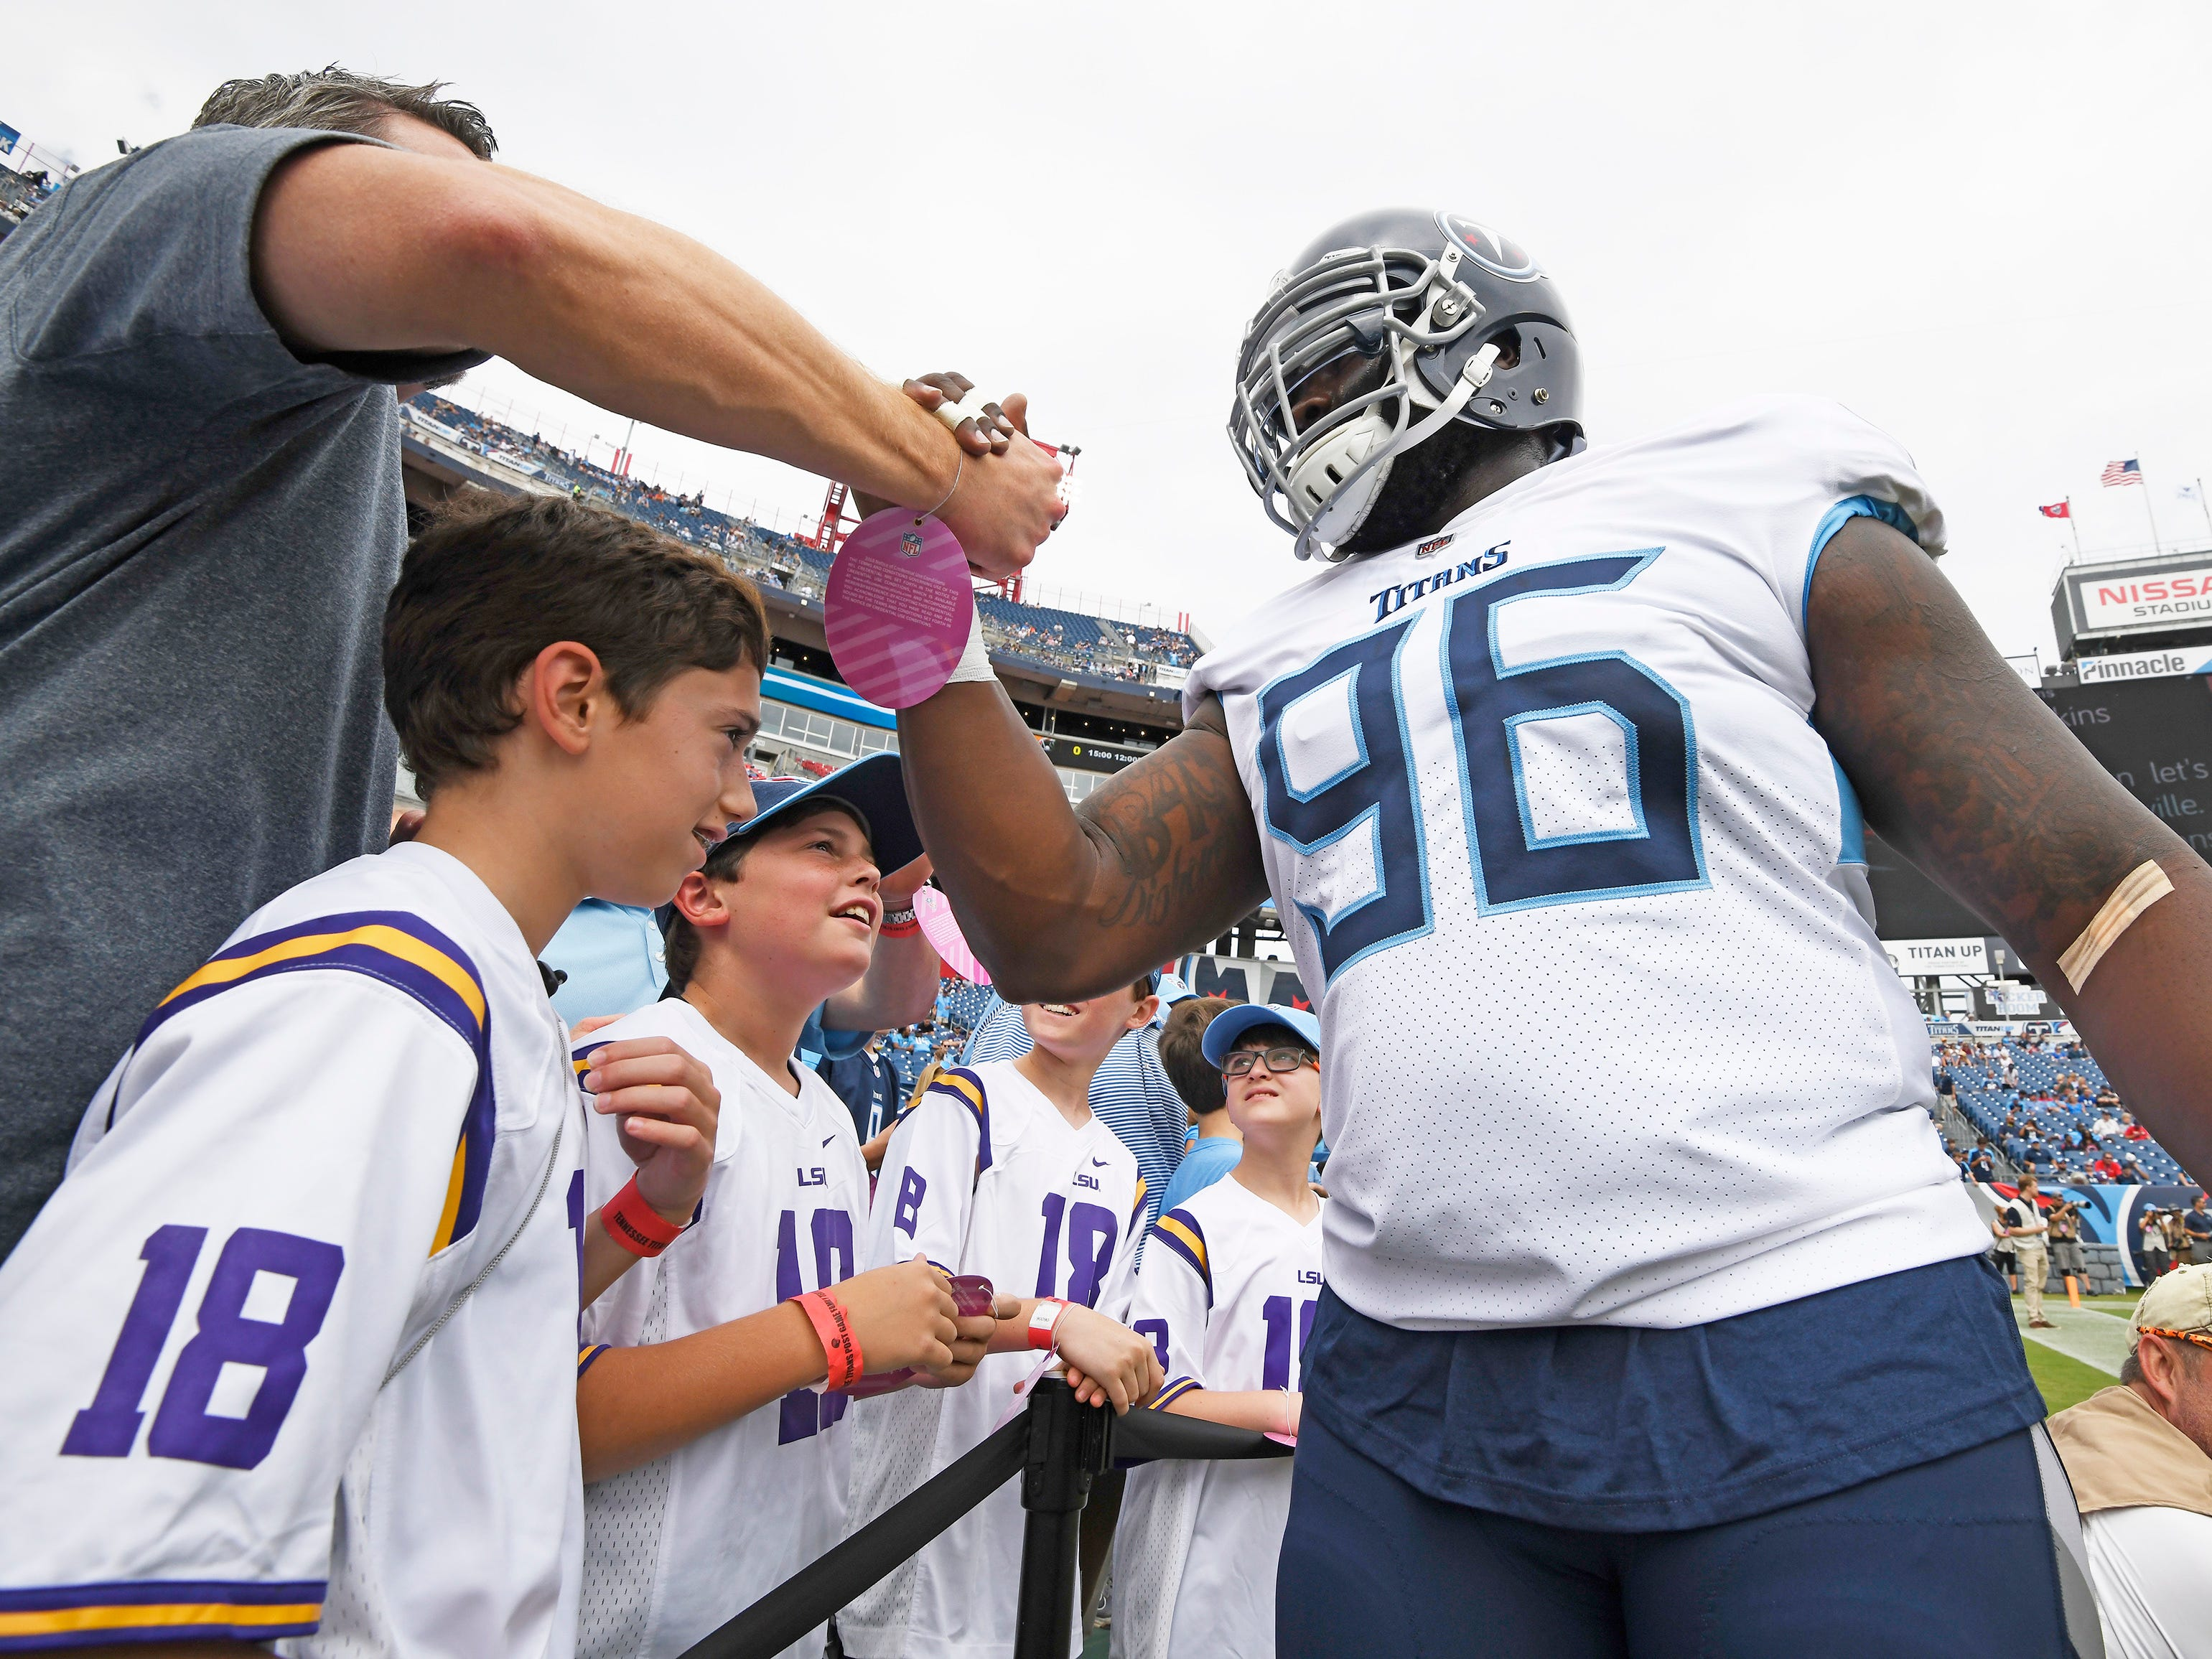 Titans defensive tackle Bennie Logan (96) slaps hands with fans before the game at Nissan Stadium Sunday, Sept. 16, 2018, in Nashville, Tenn.